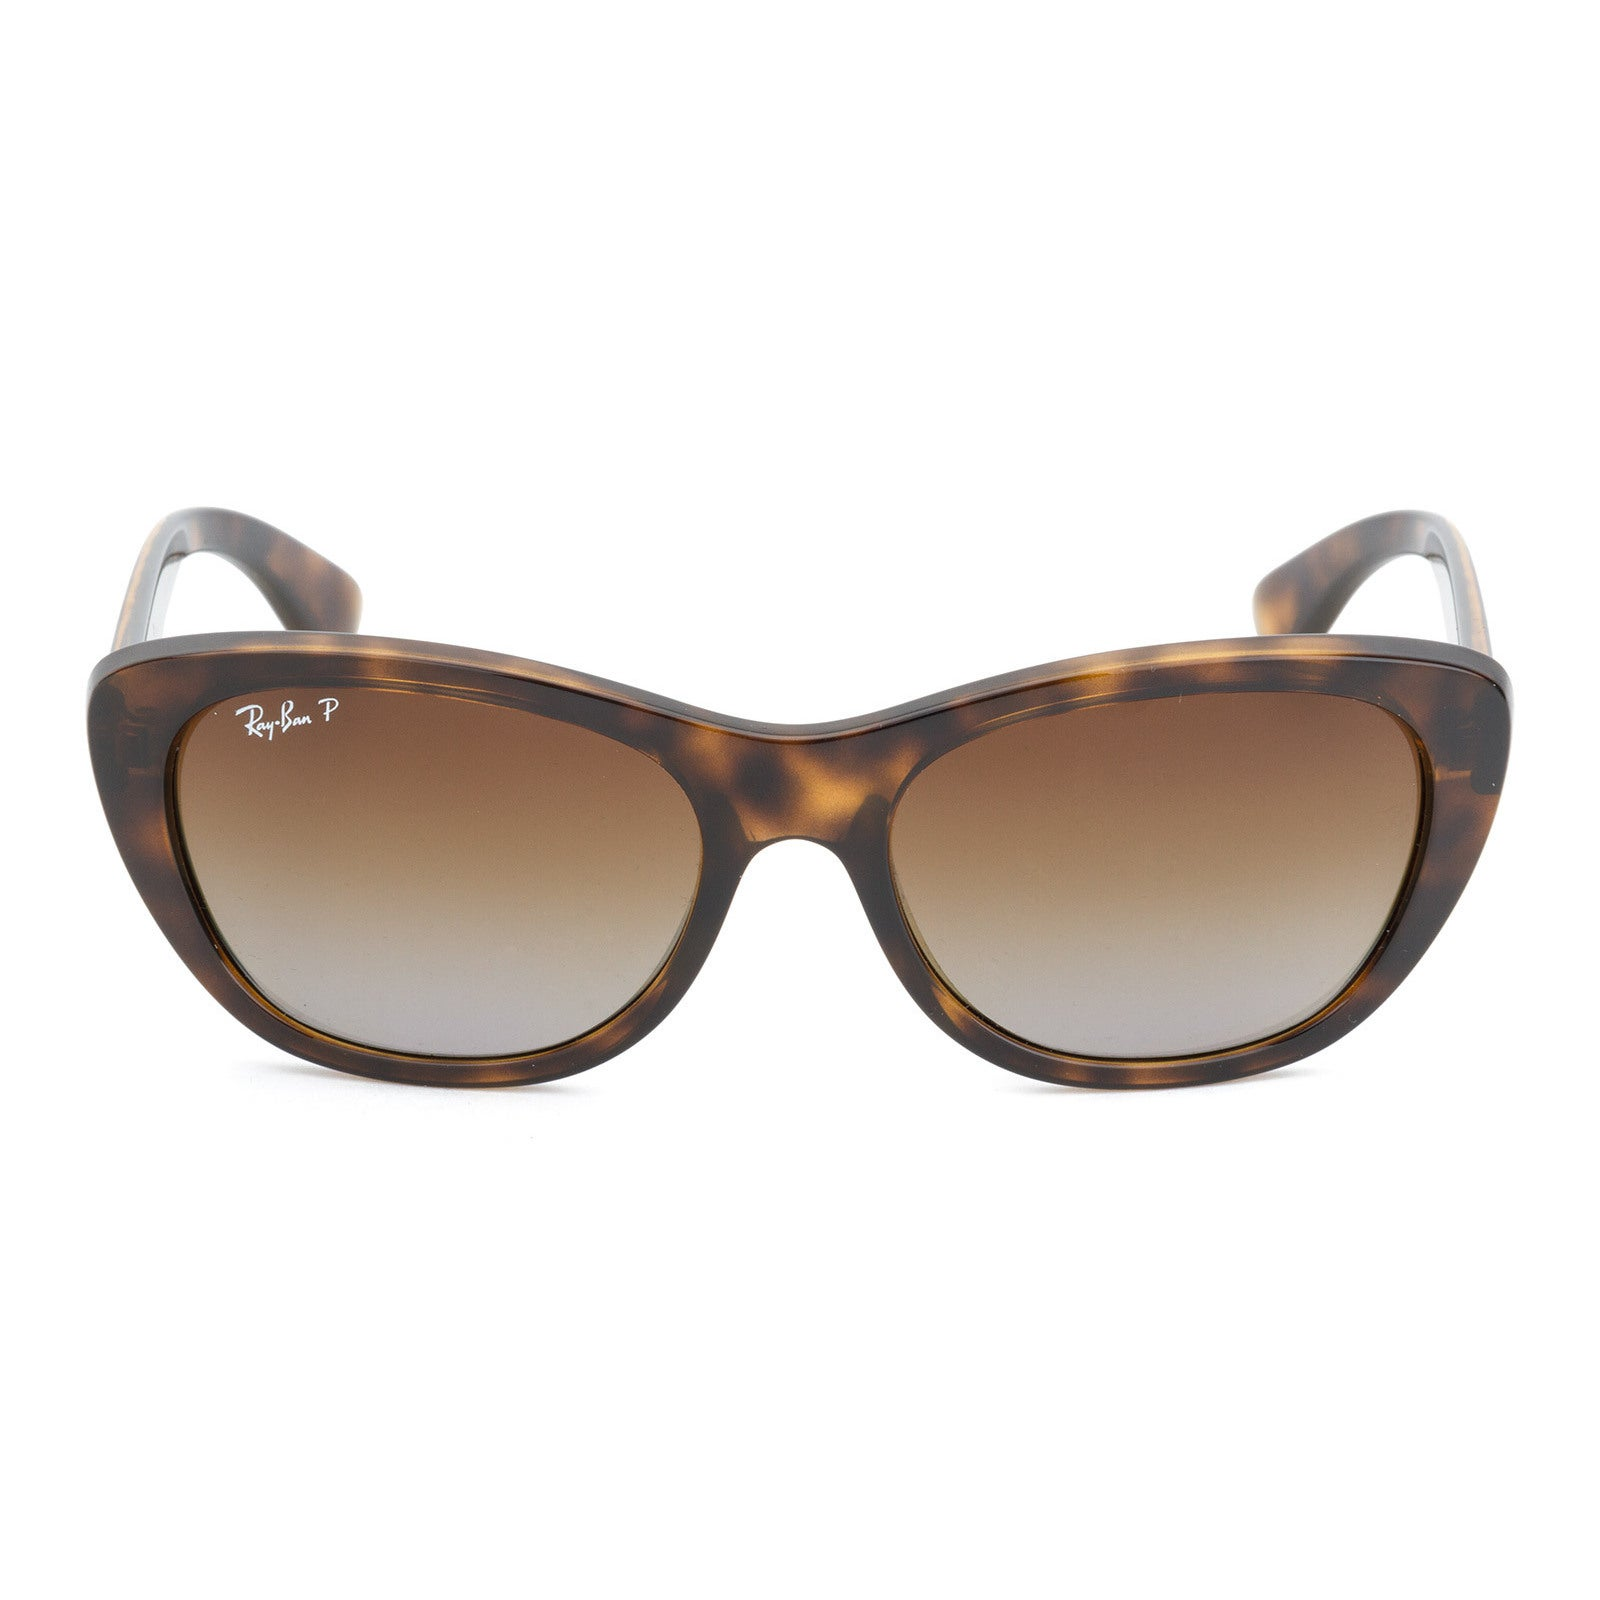 2af176deb87d Shop Ray-Ban RB4227 710/T5 55mm Polarized Brown Gradient Lenses Tortoise  Frame Sunglasses - Free Shipping Today - Overstock - 11708053